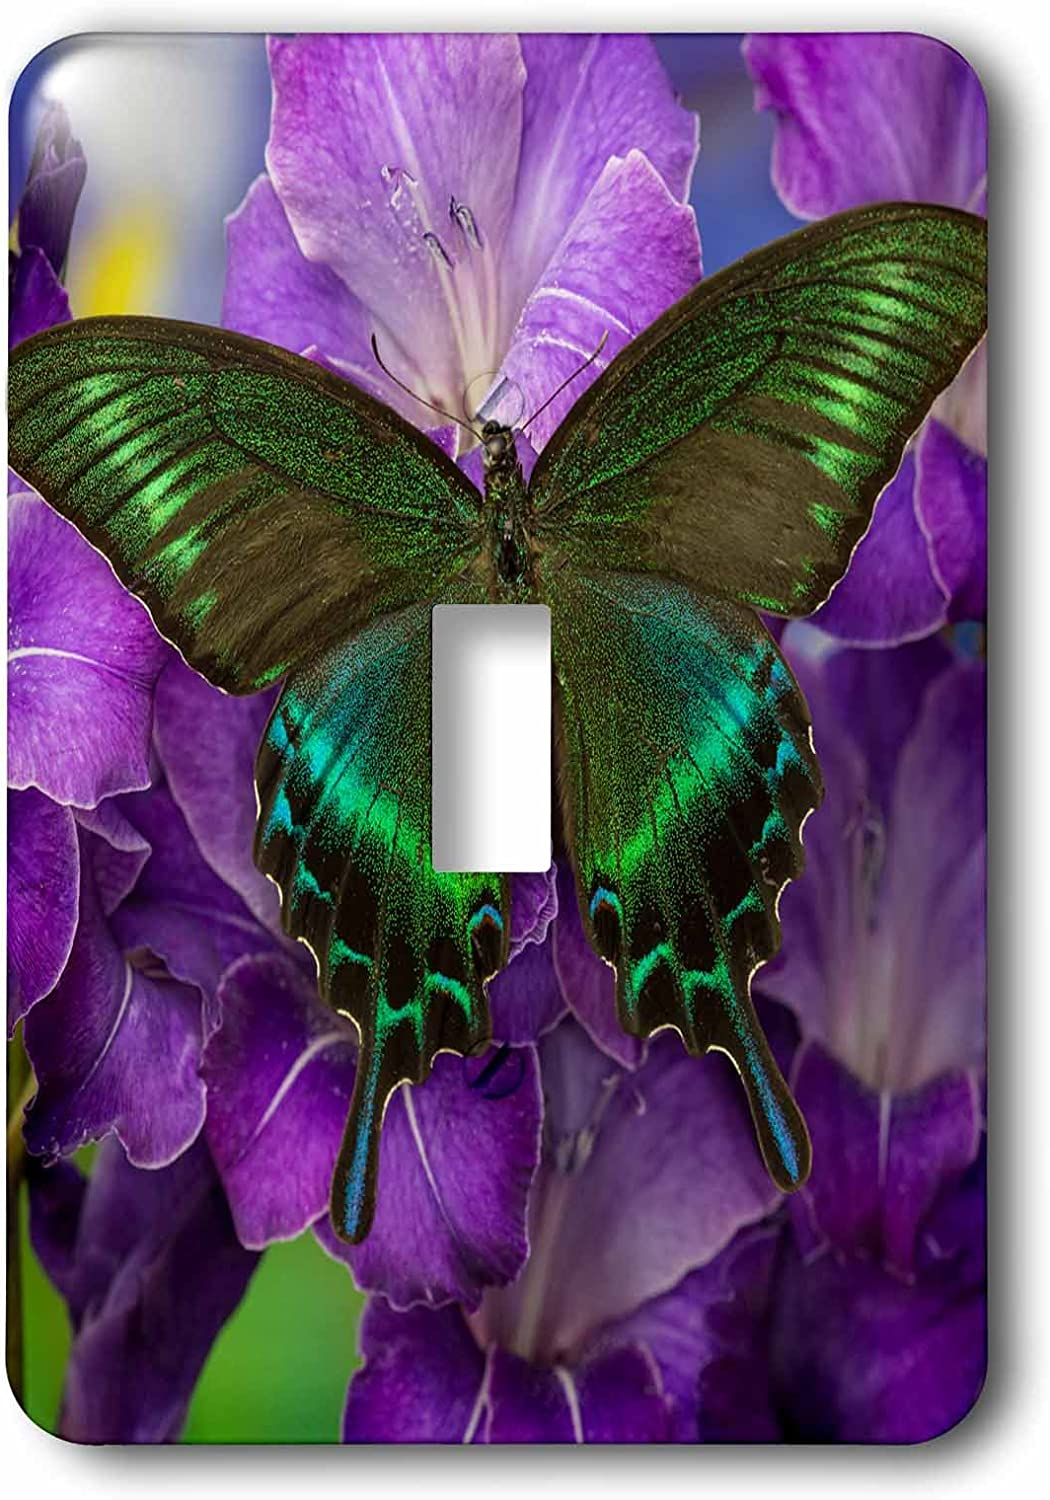 3drose Lsp 228394 1 The Common Peacock Swallowtail Butterfly Single Toggle Switch Amazon Com